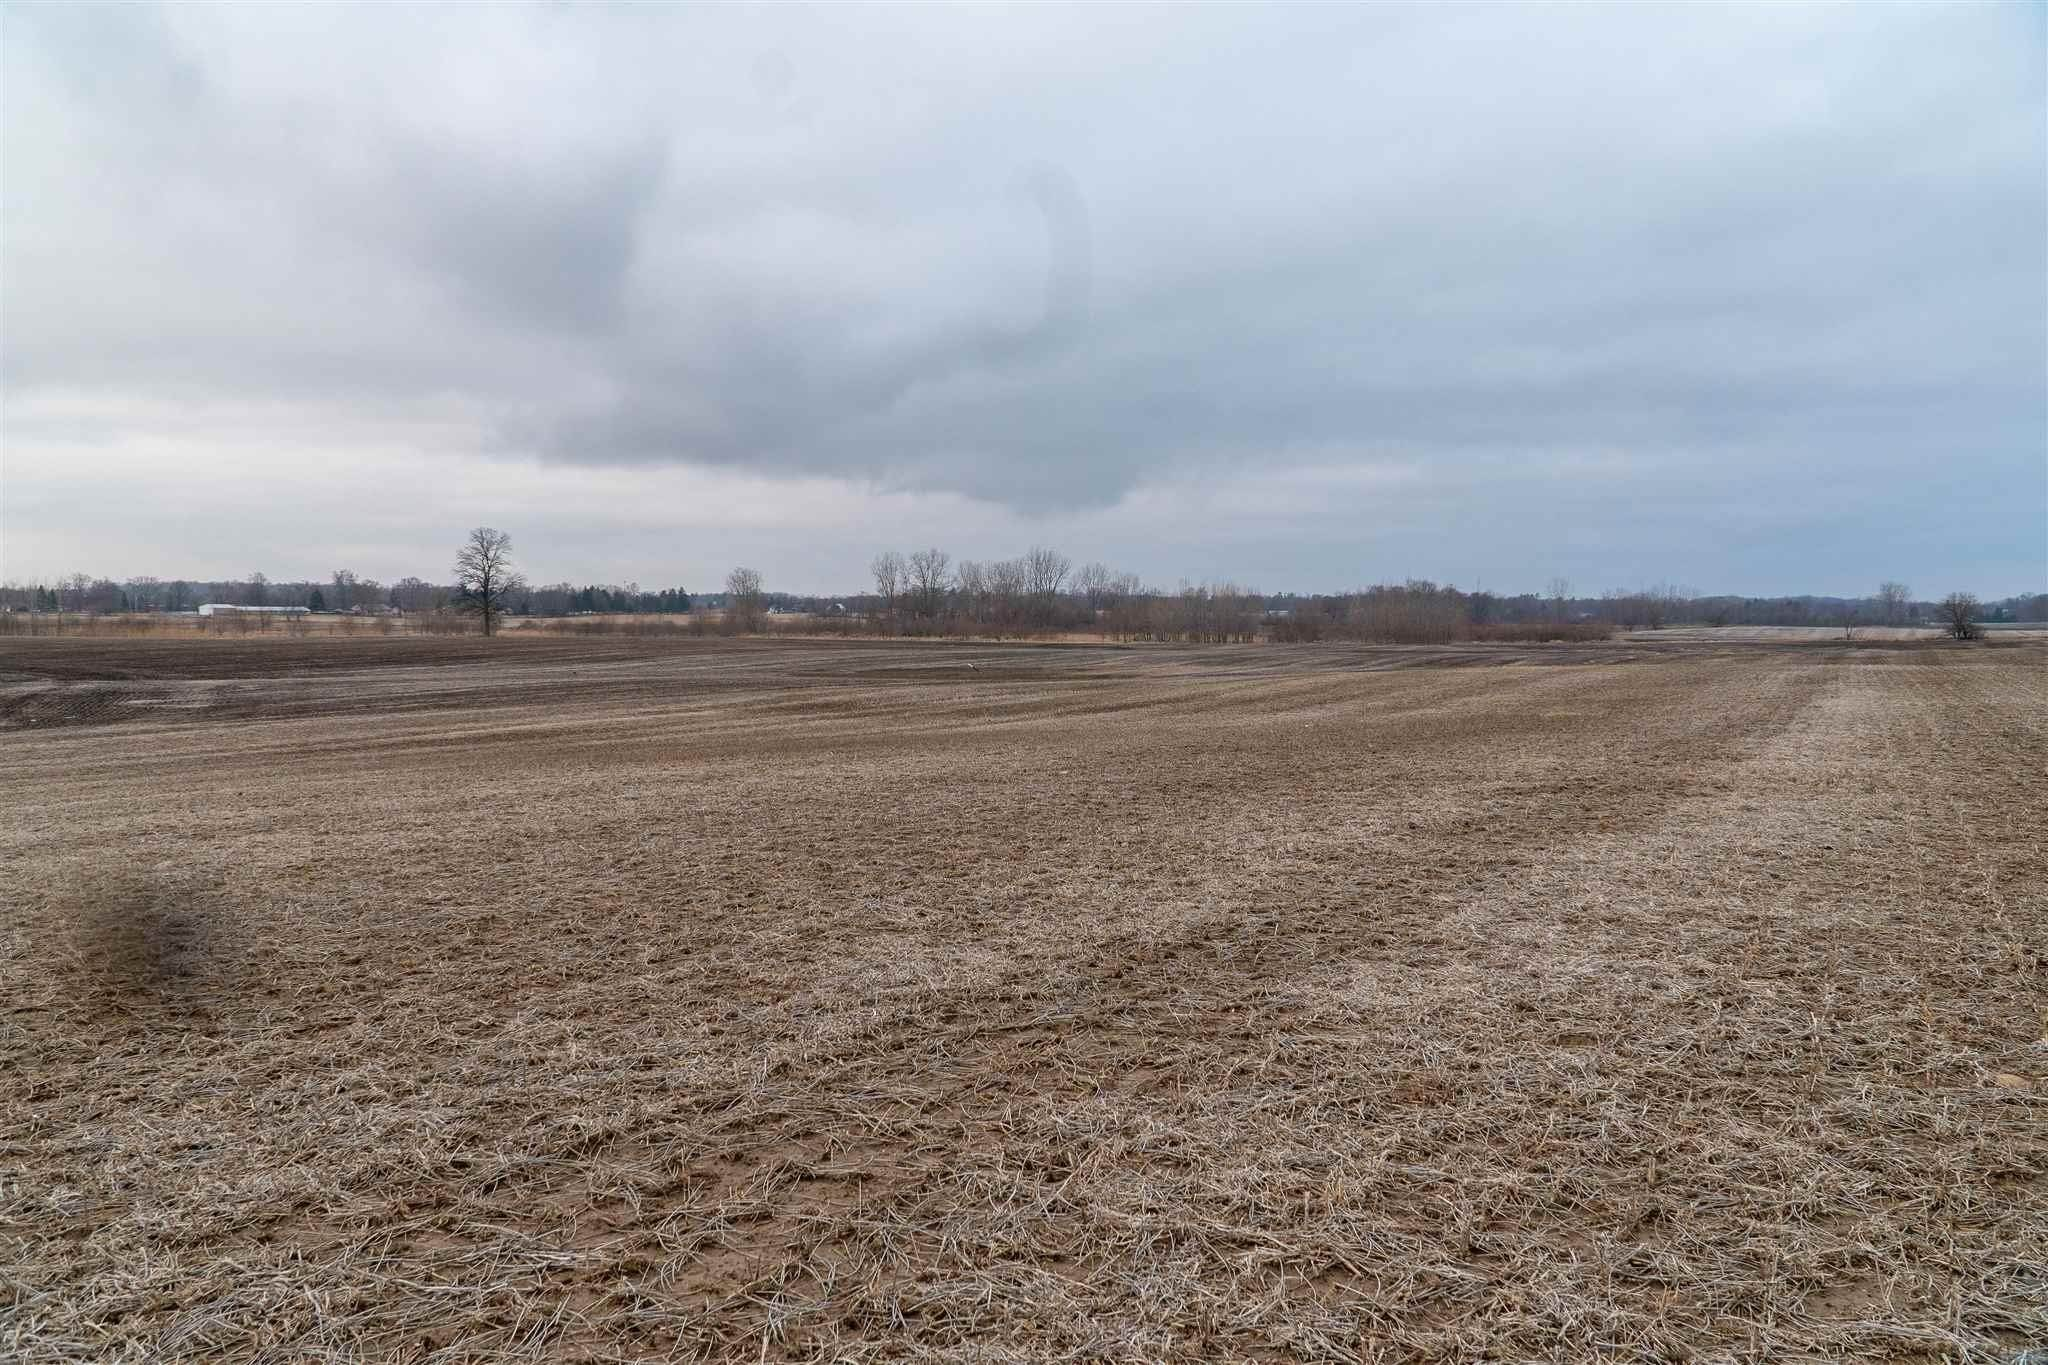 Agricultural Land for Sale at 5 S 100 E Angola, Indiana 46703 United States